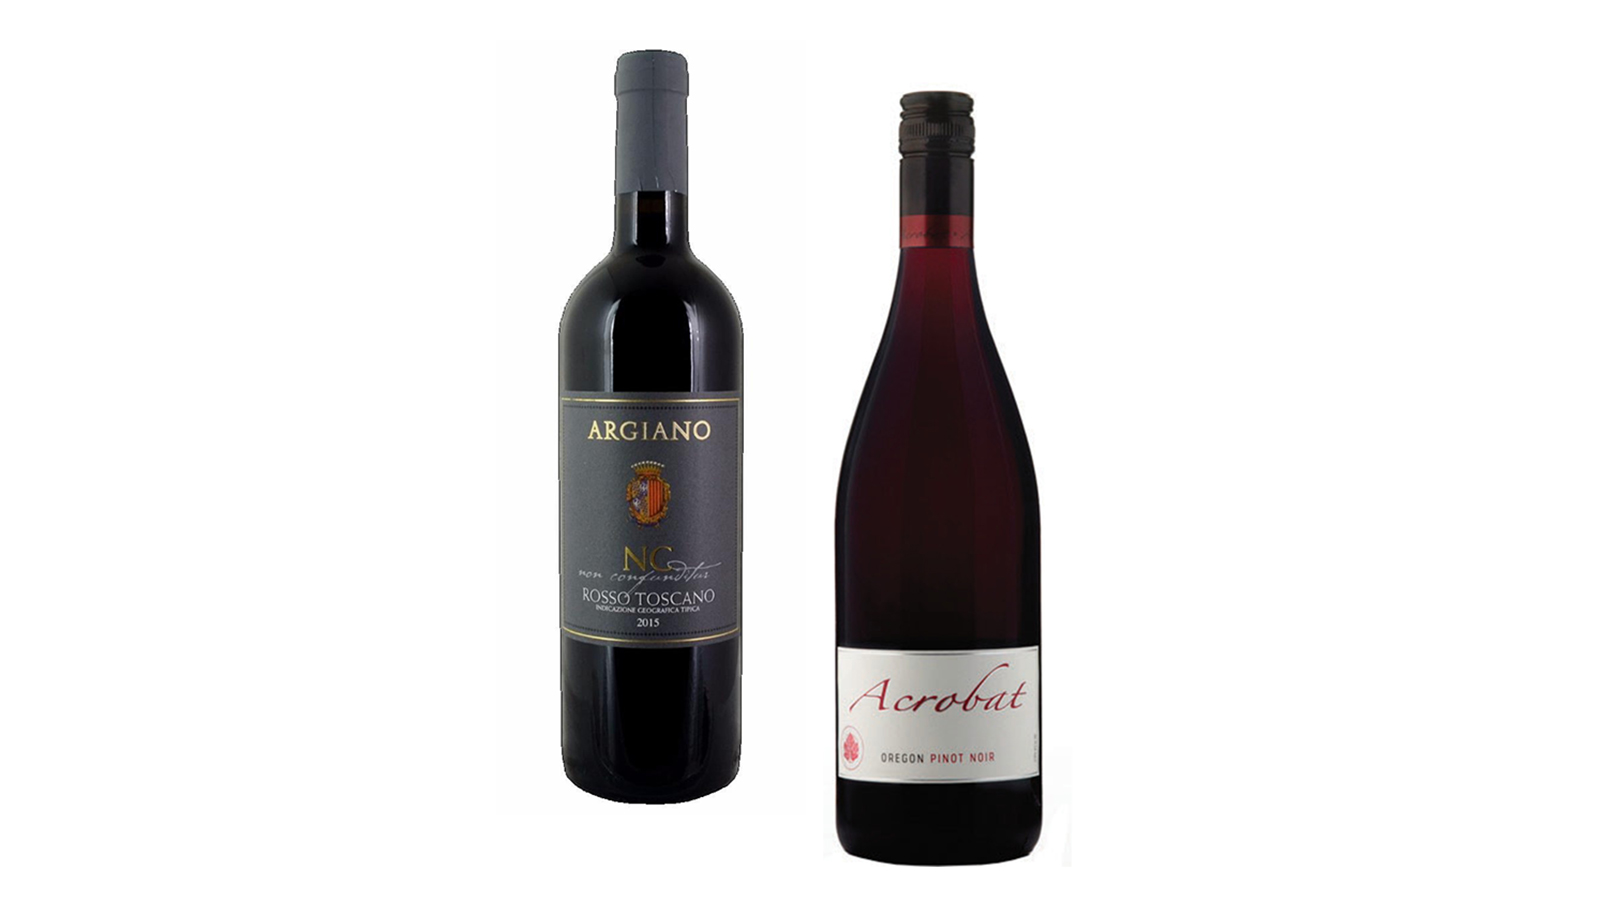 Toscano and Pinot Noir bottles